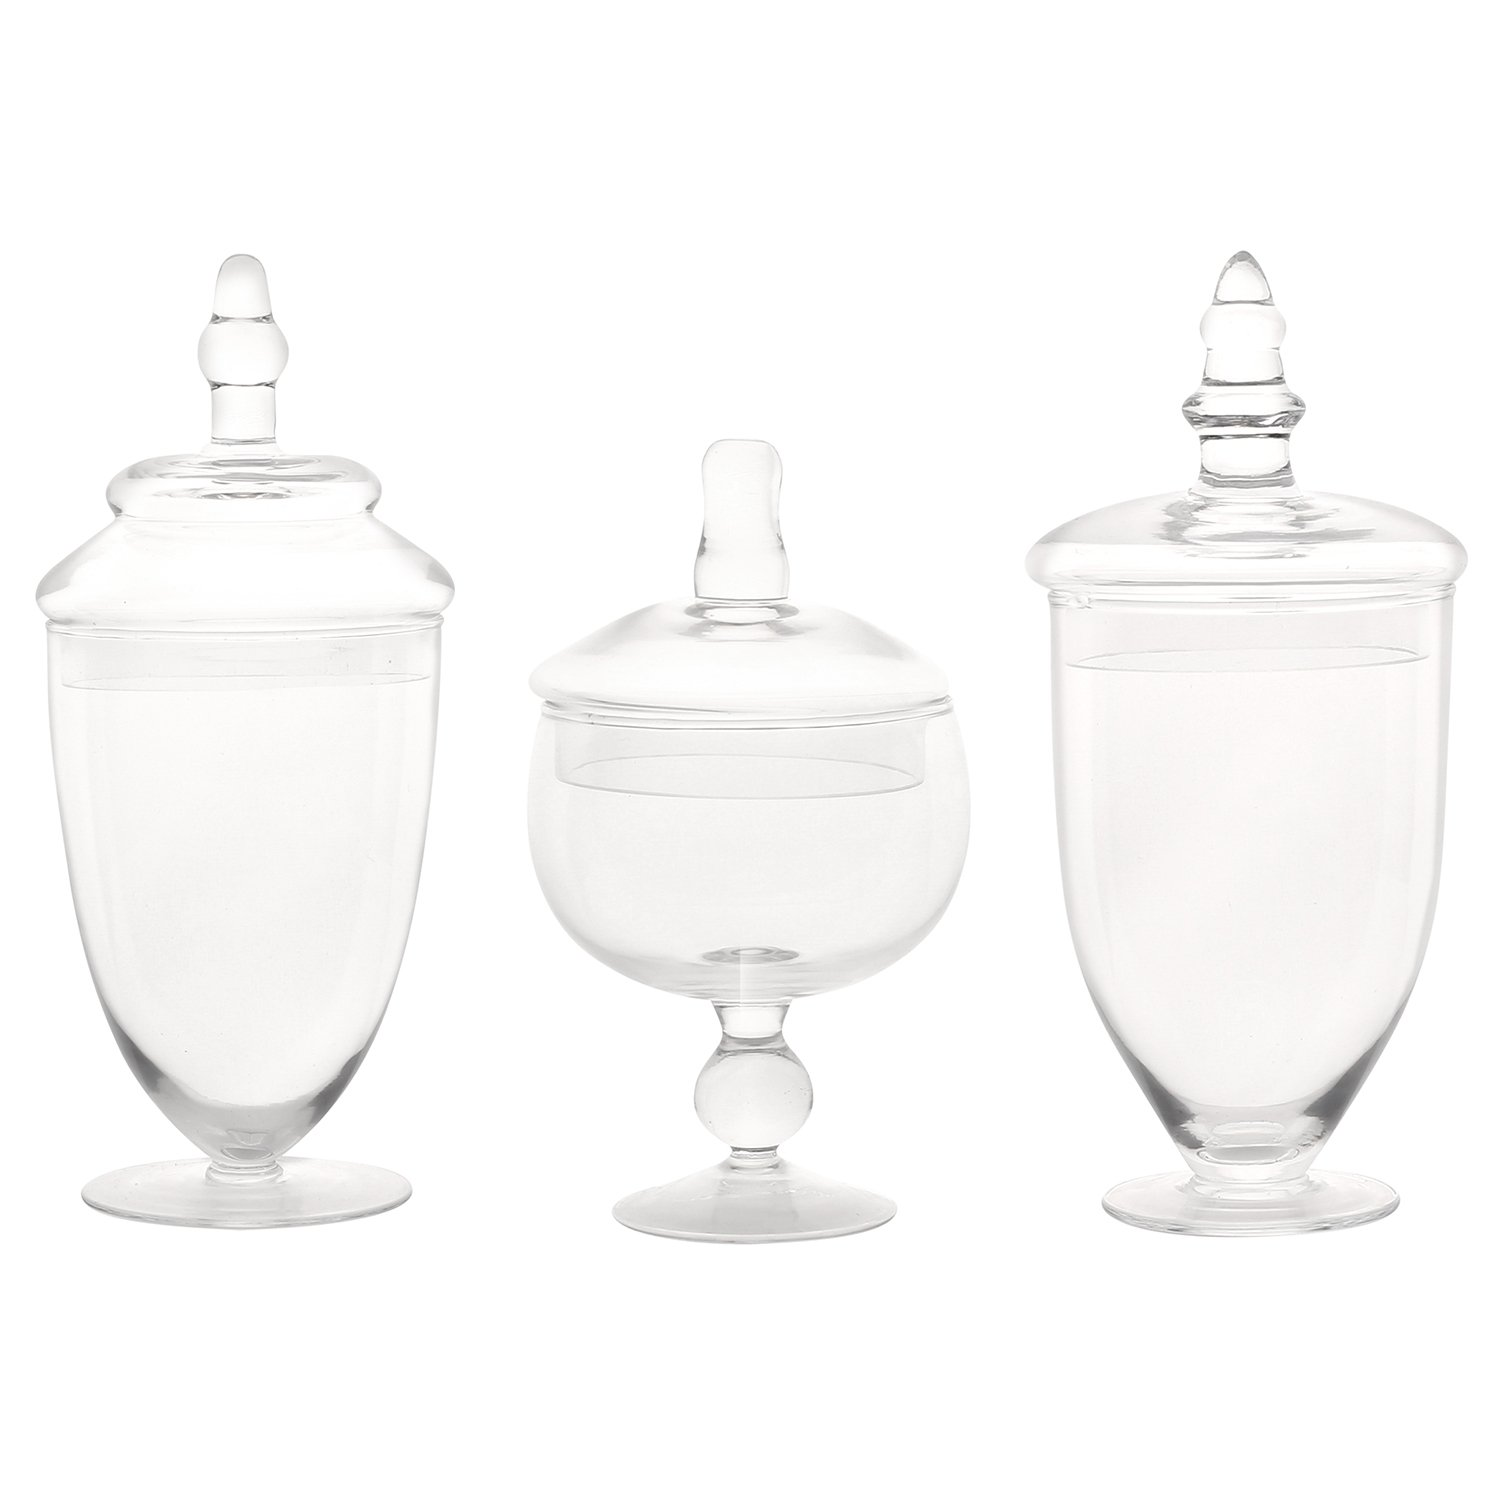 Apothecary Jars (Set of 3)